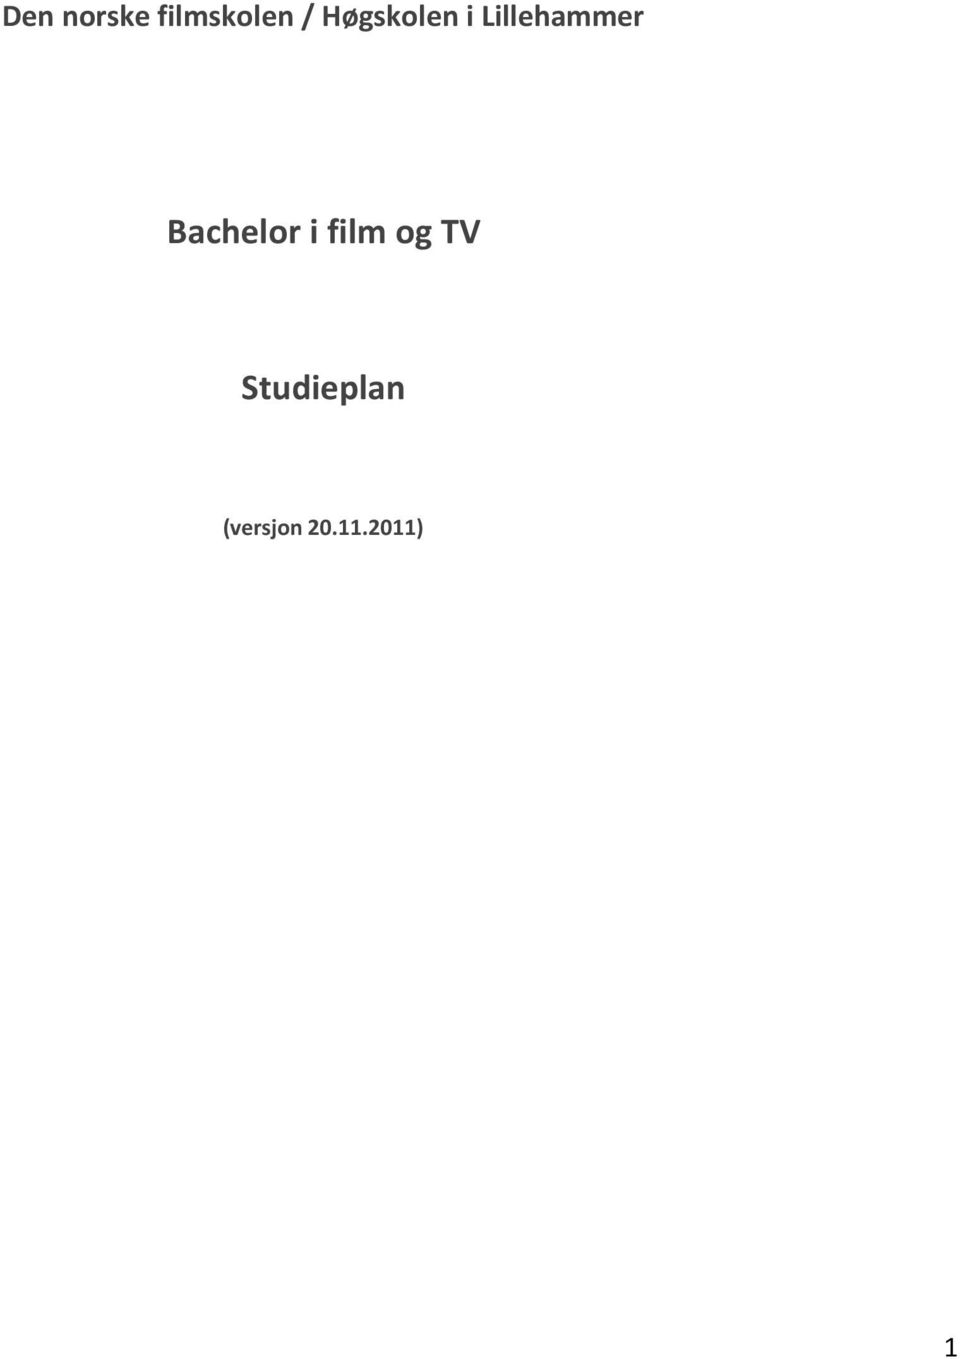 Bachelor i film og TV